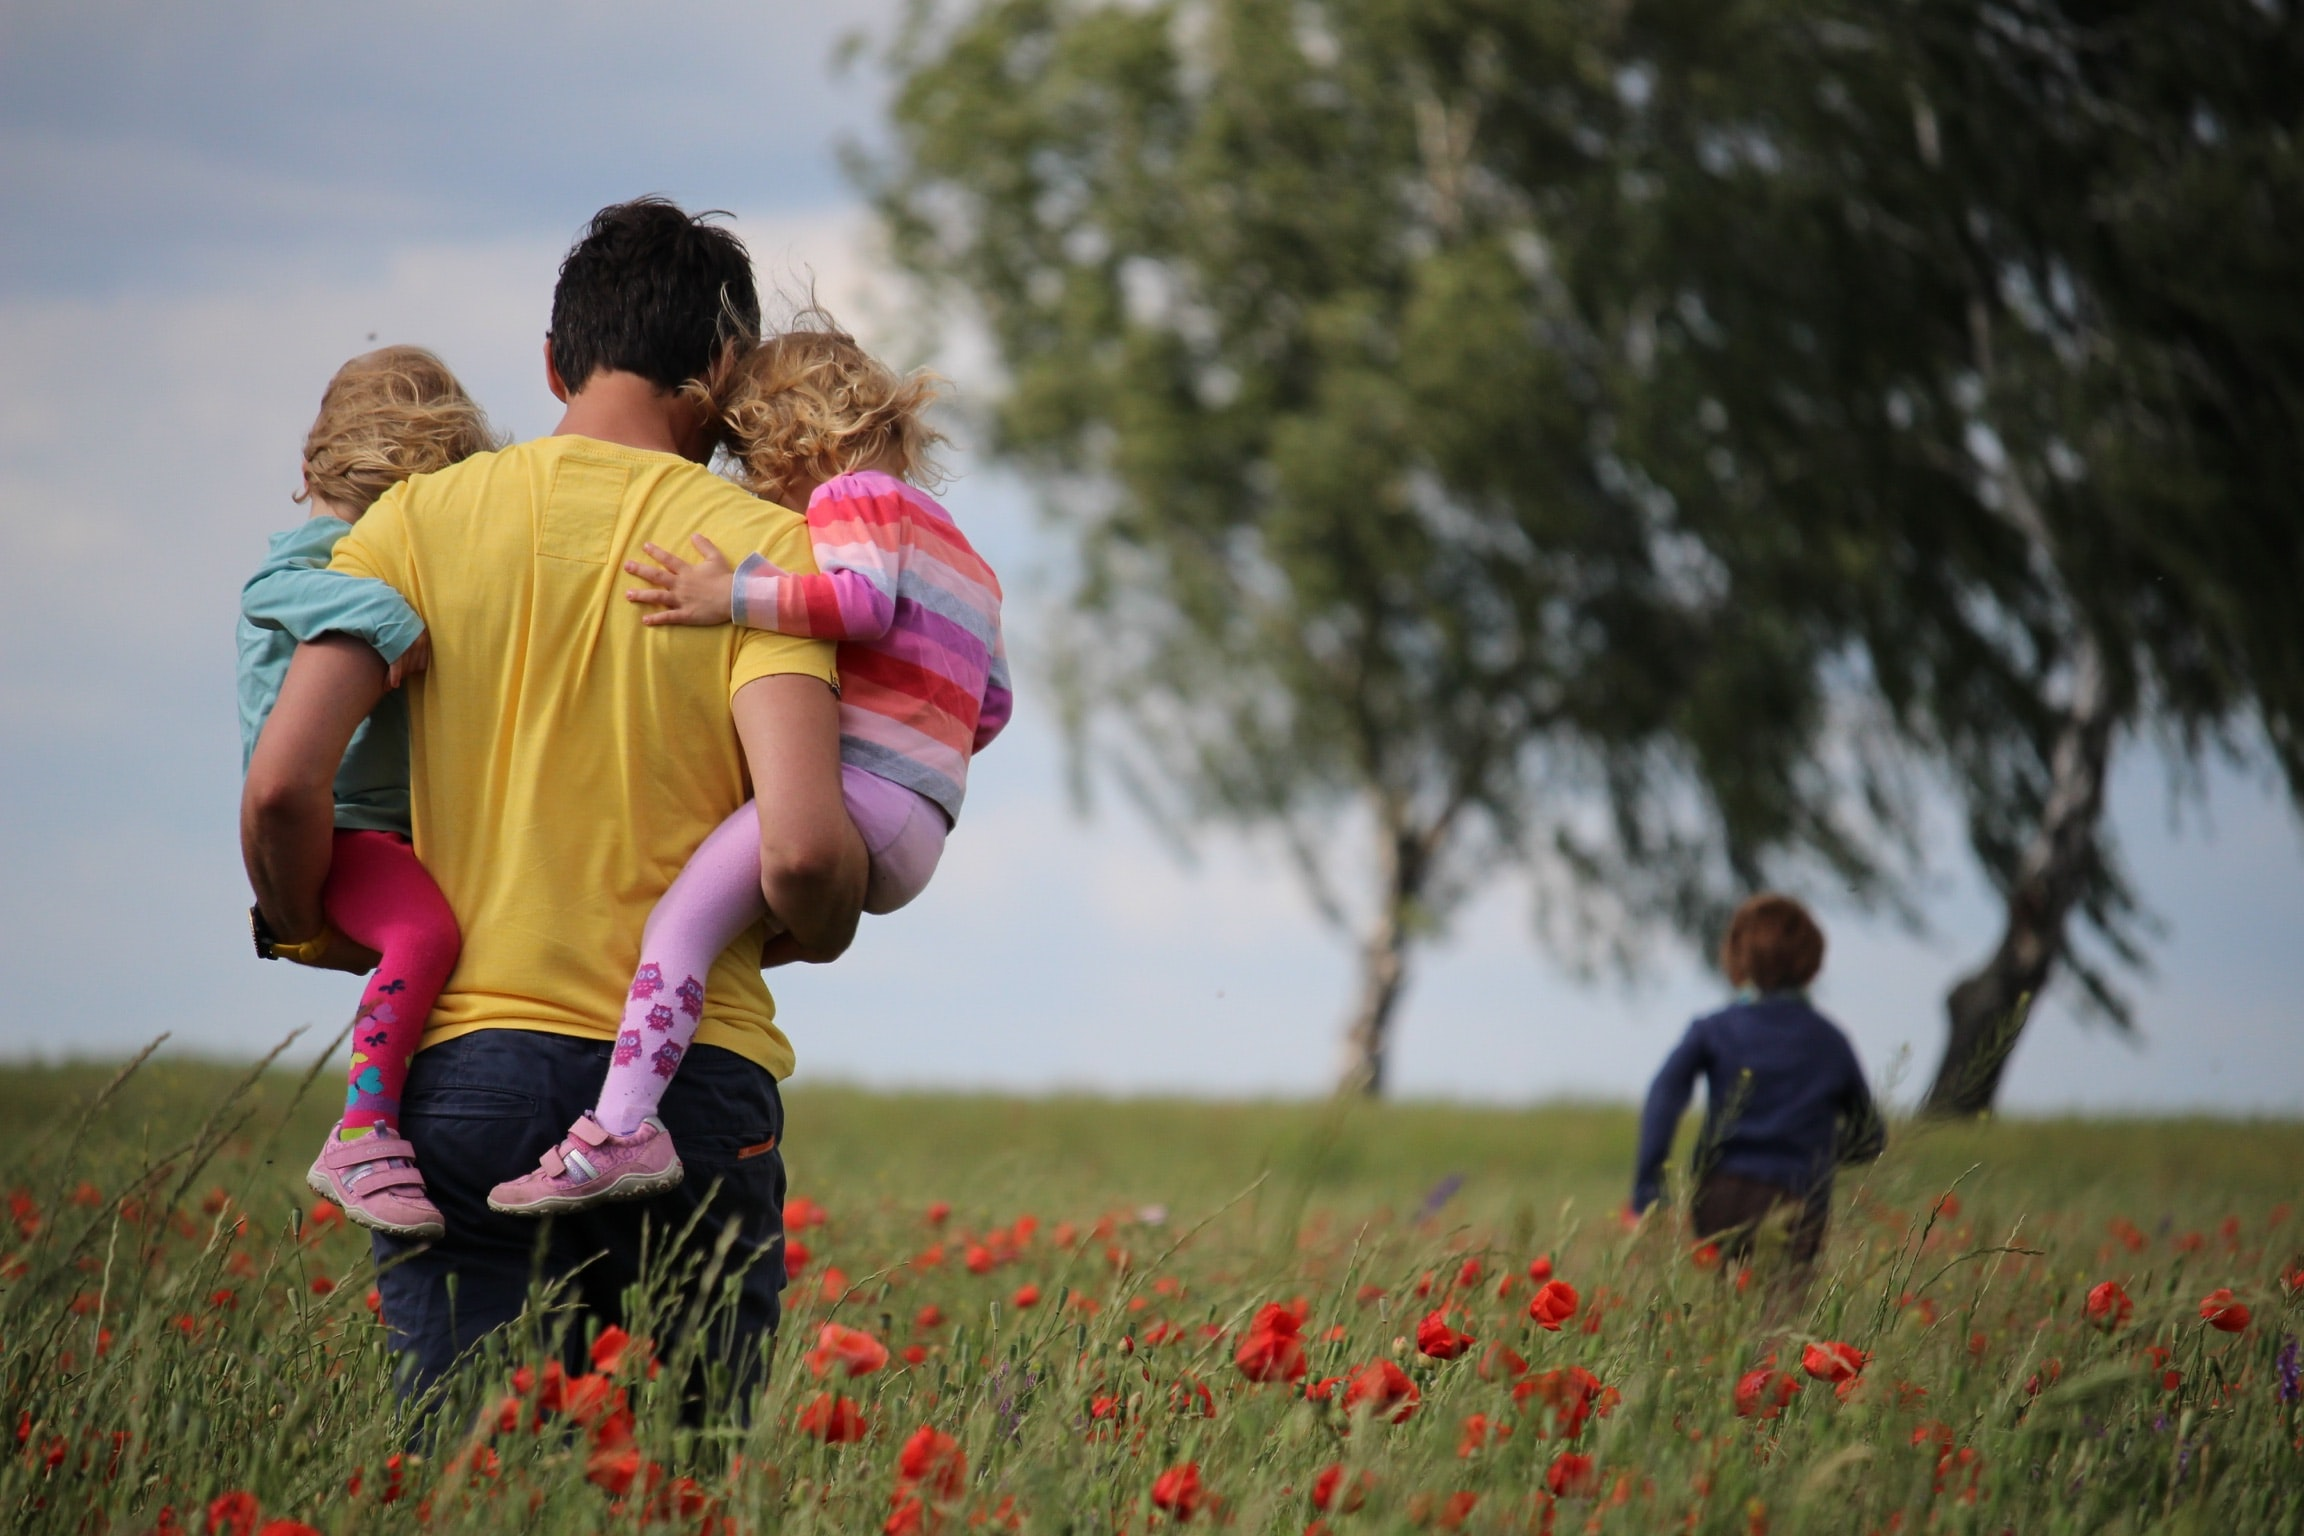 A parent walks through a poppy field holding two children. A third child is running ahead of them.